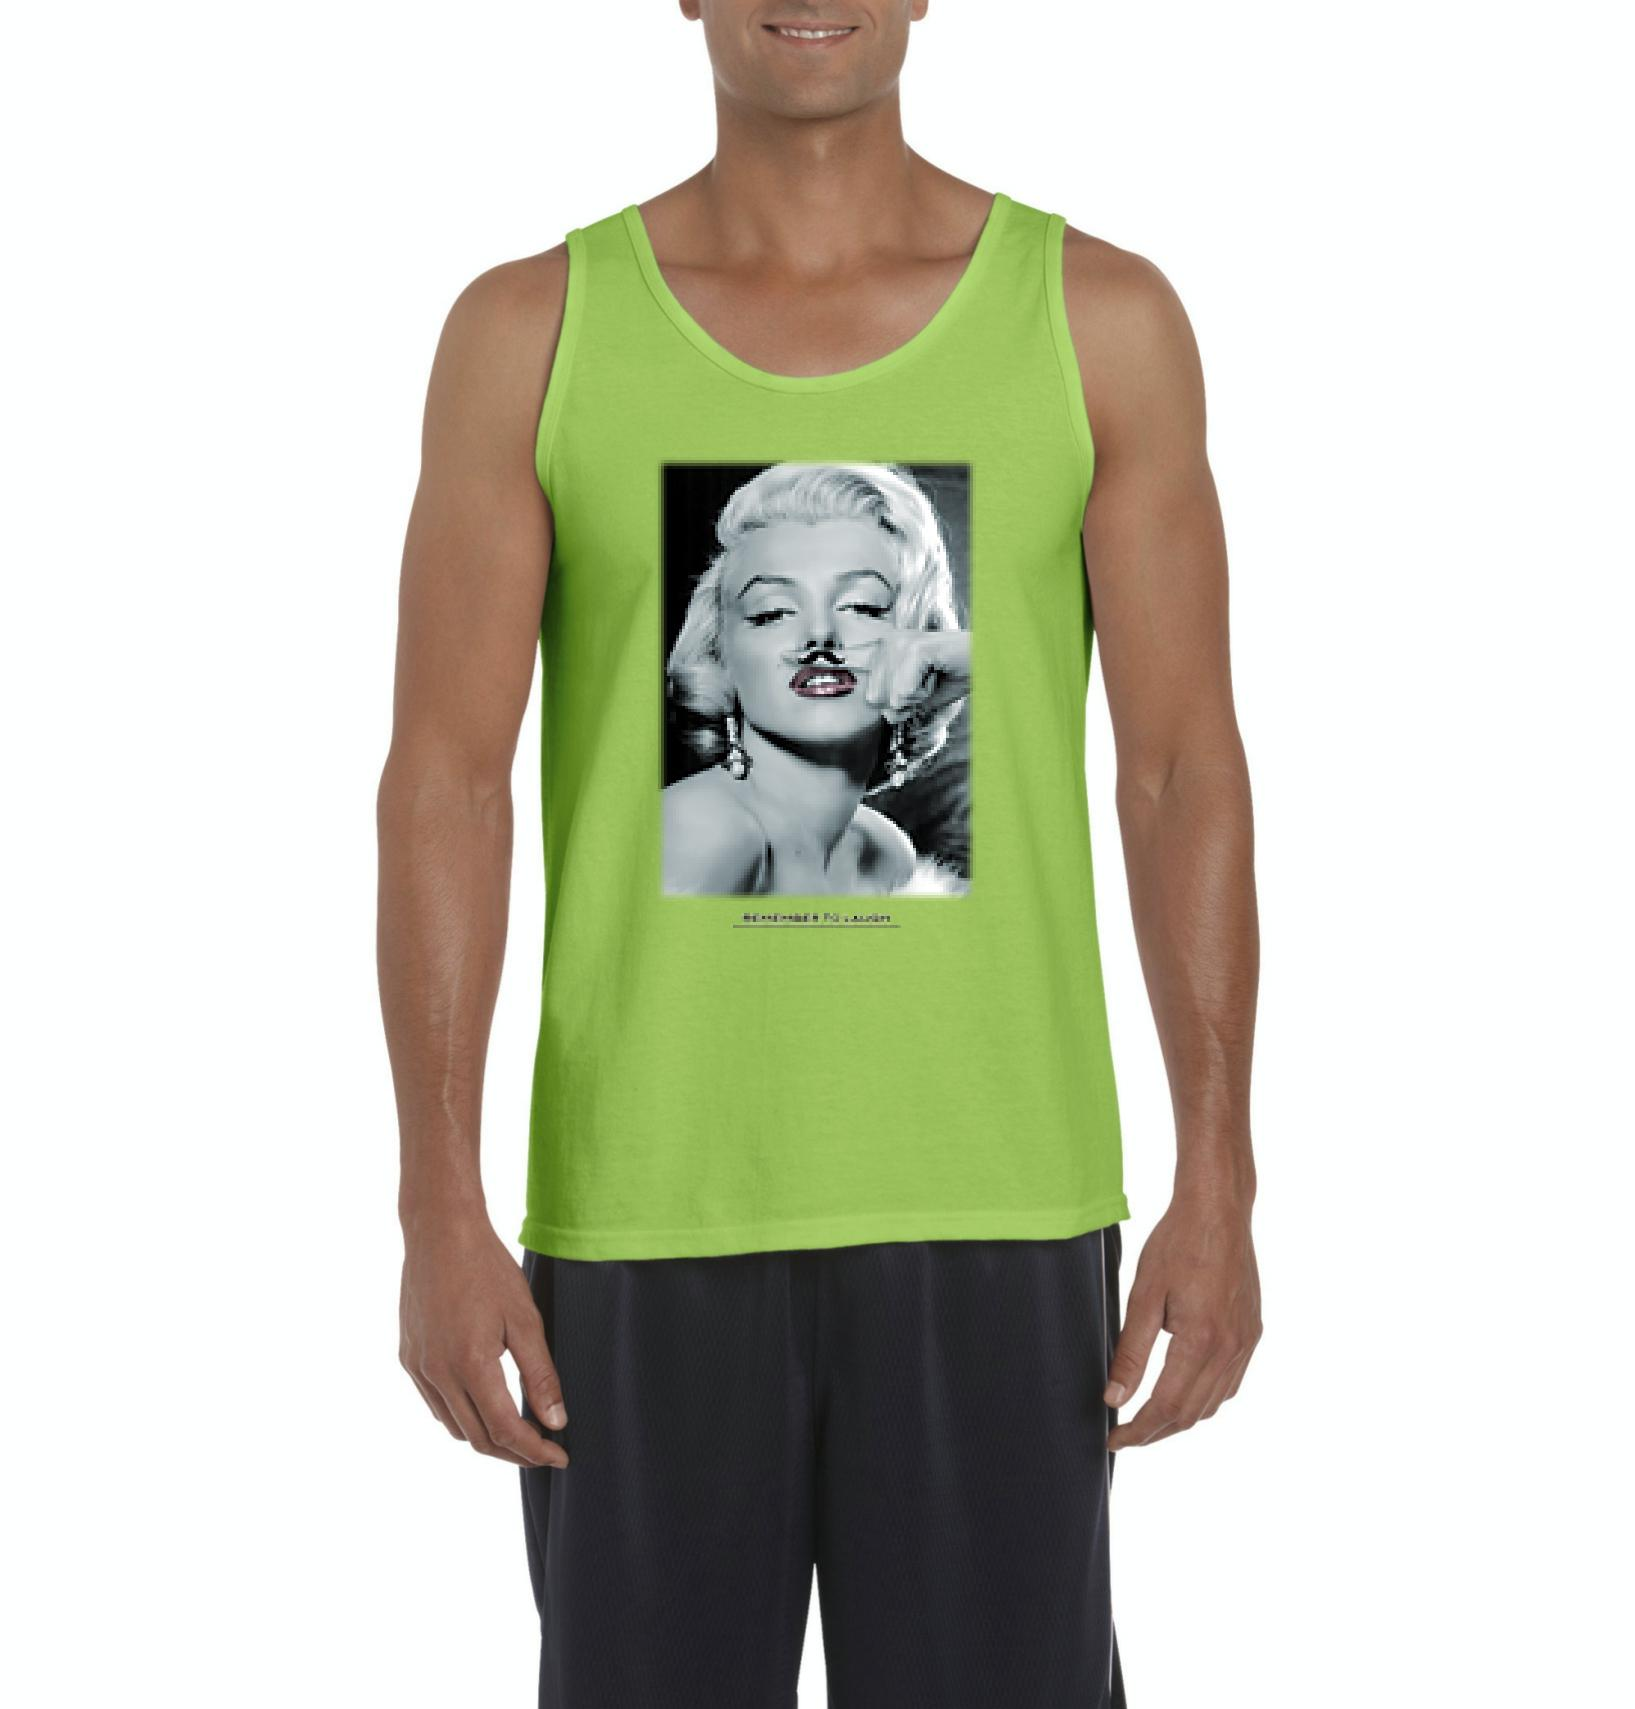 Artix Marilyn Monroe with Mustache Gift for Marilyn Monroe Quotes Lovers Men's Tank Top